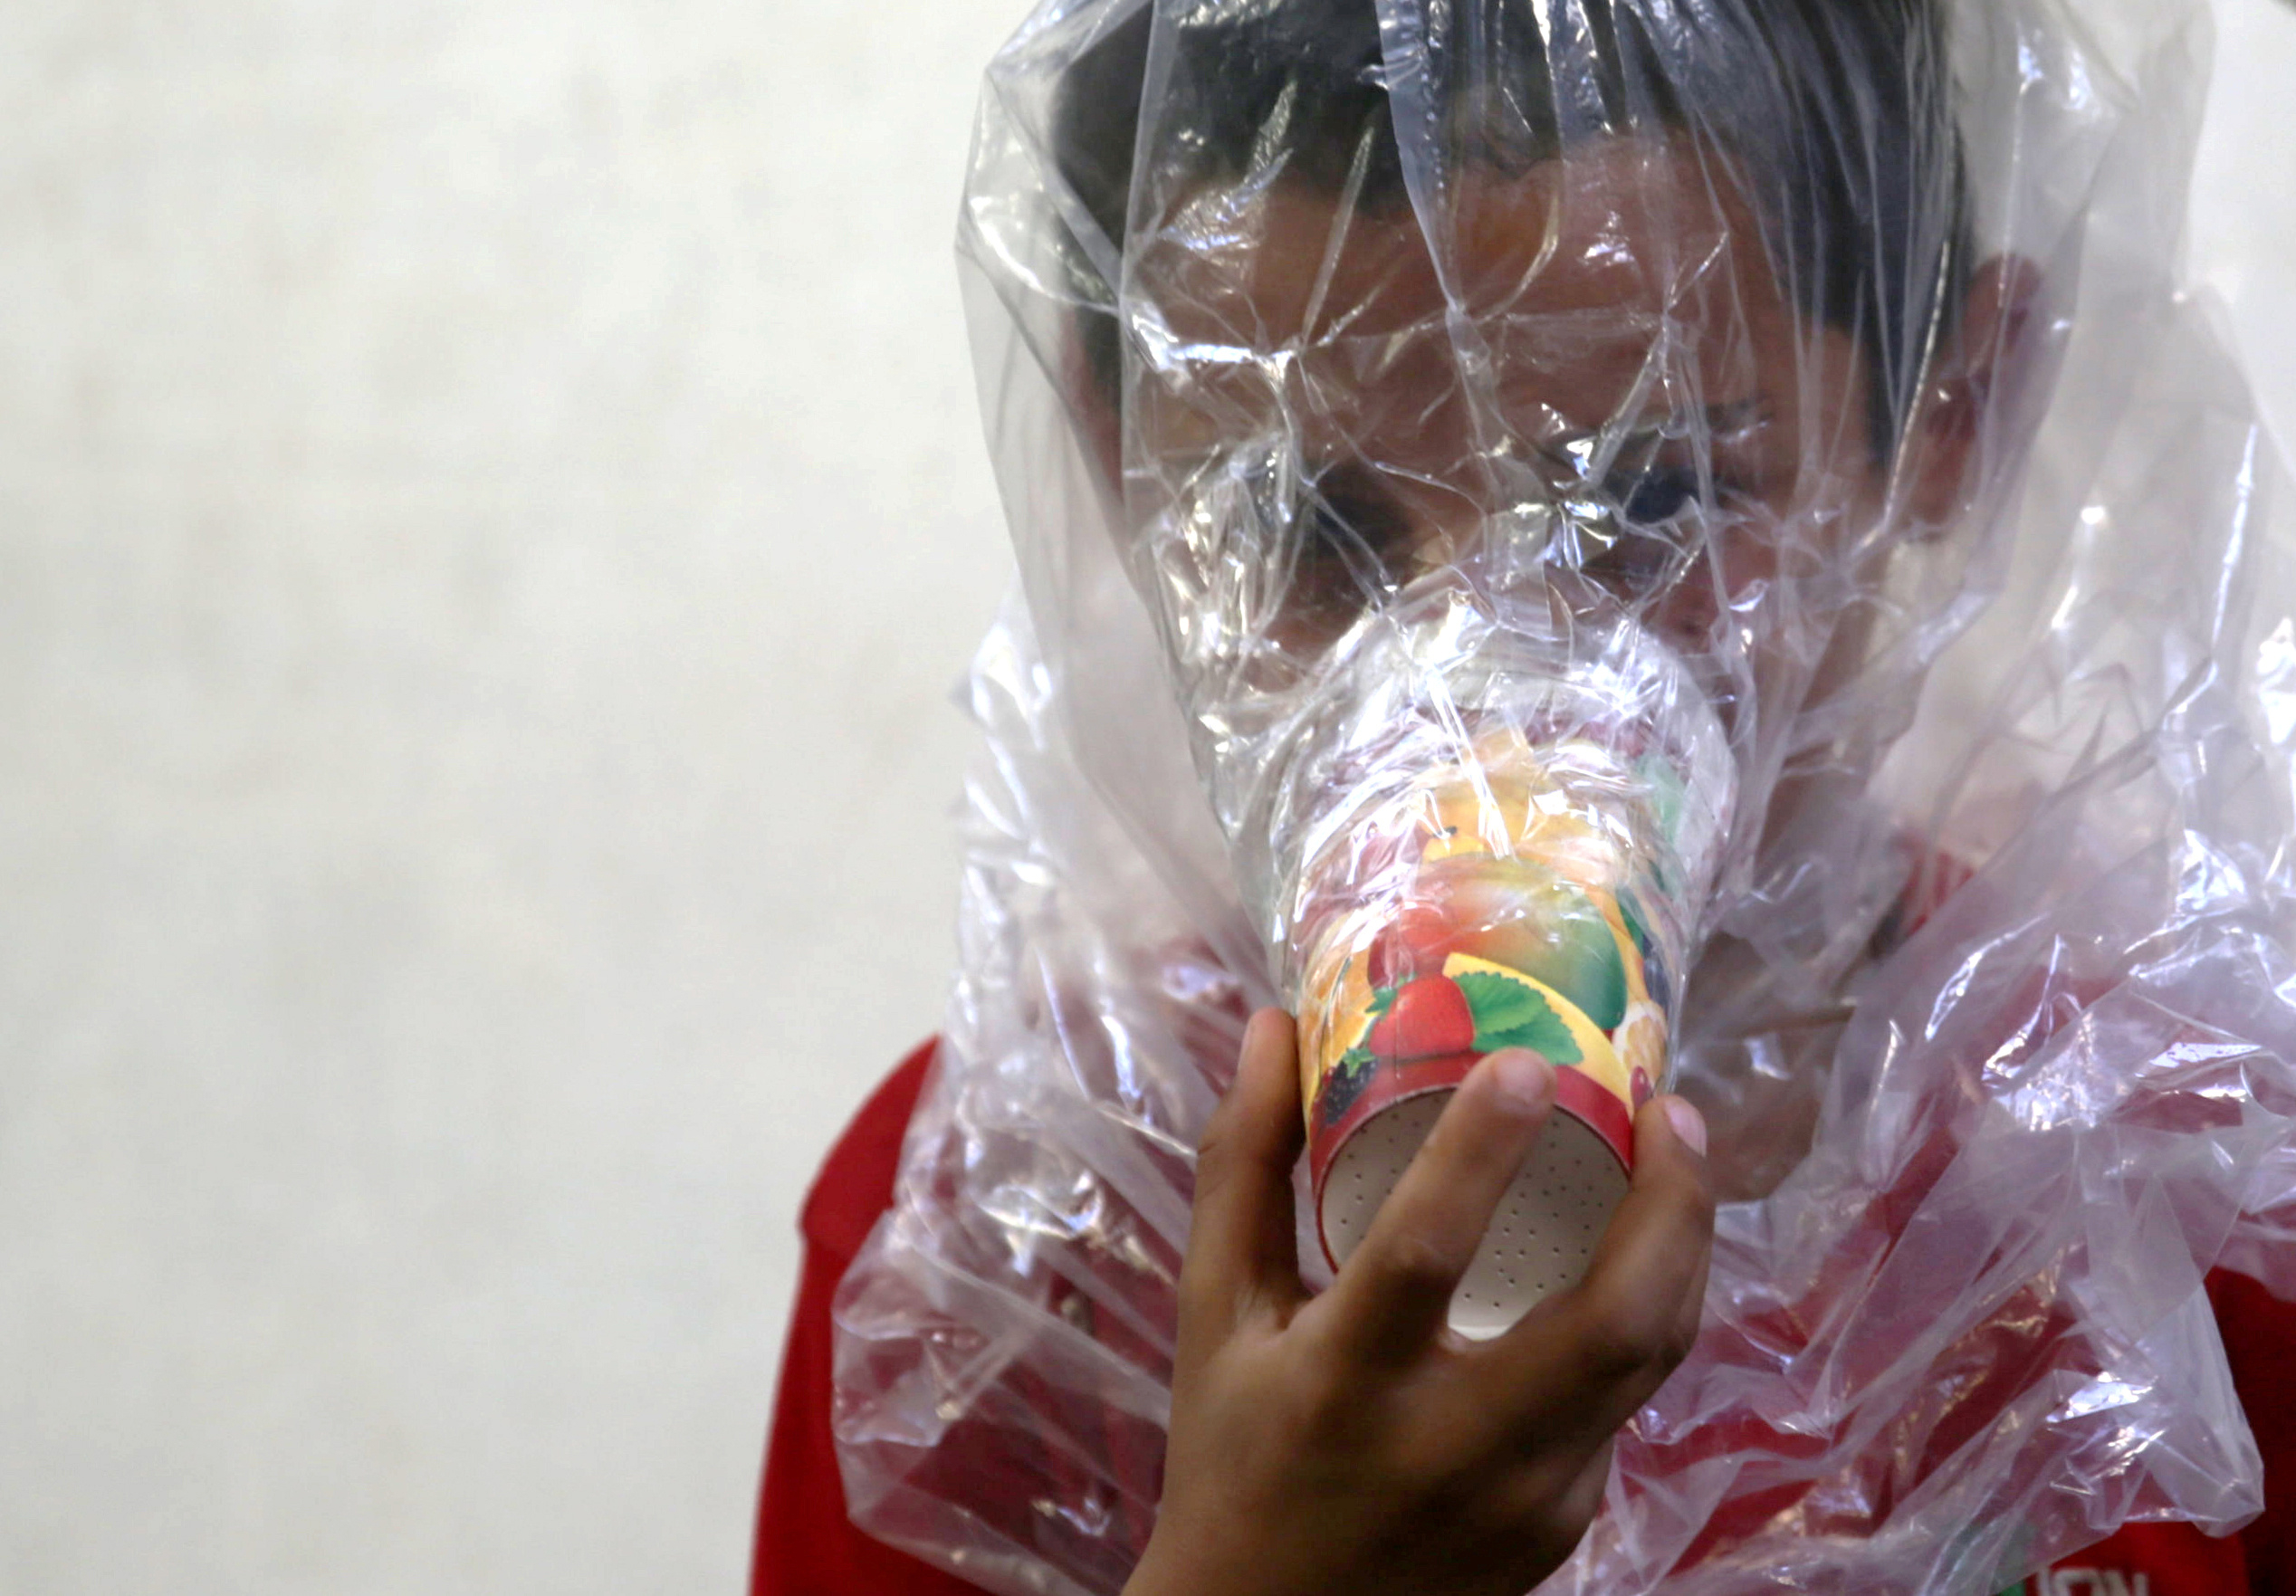 A boy tries on an improvised gas mask in Idlib, Syria, Sept. 3, 2018. The U.S. special adviser for Syria, Jim Jeffrey, said there is evidence that chemical weapons are being prepared by Syrian forces around Idlib.